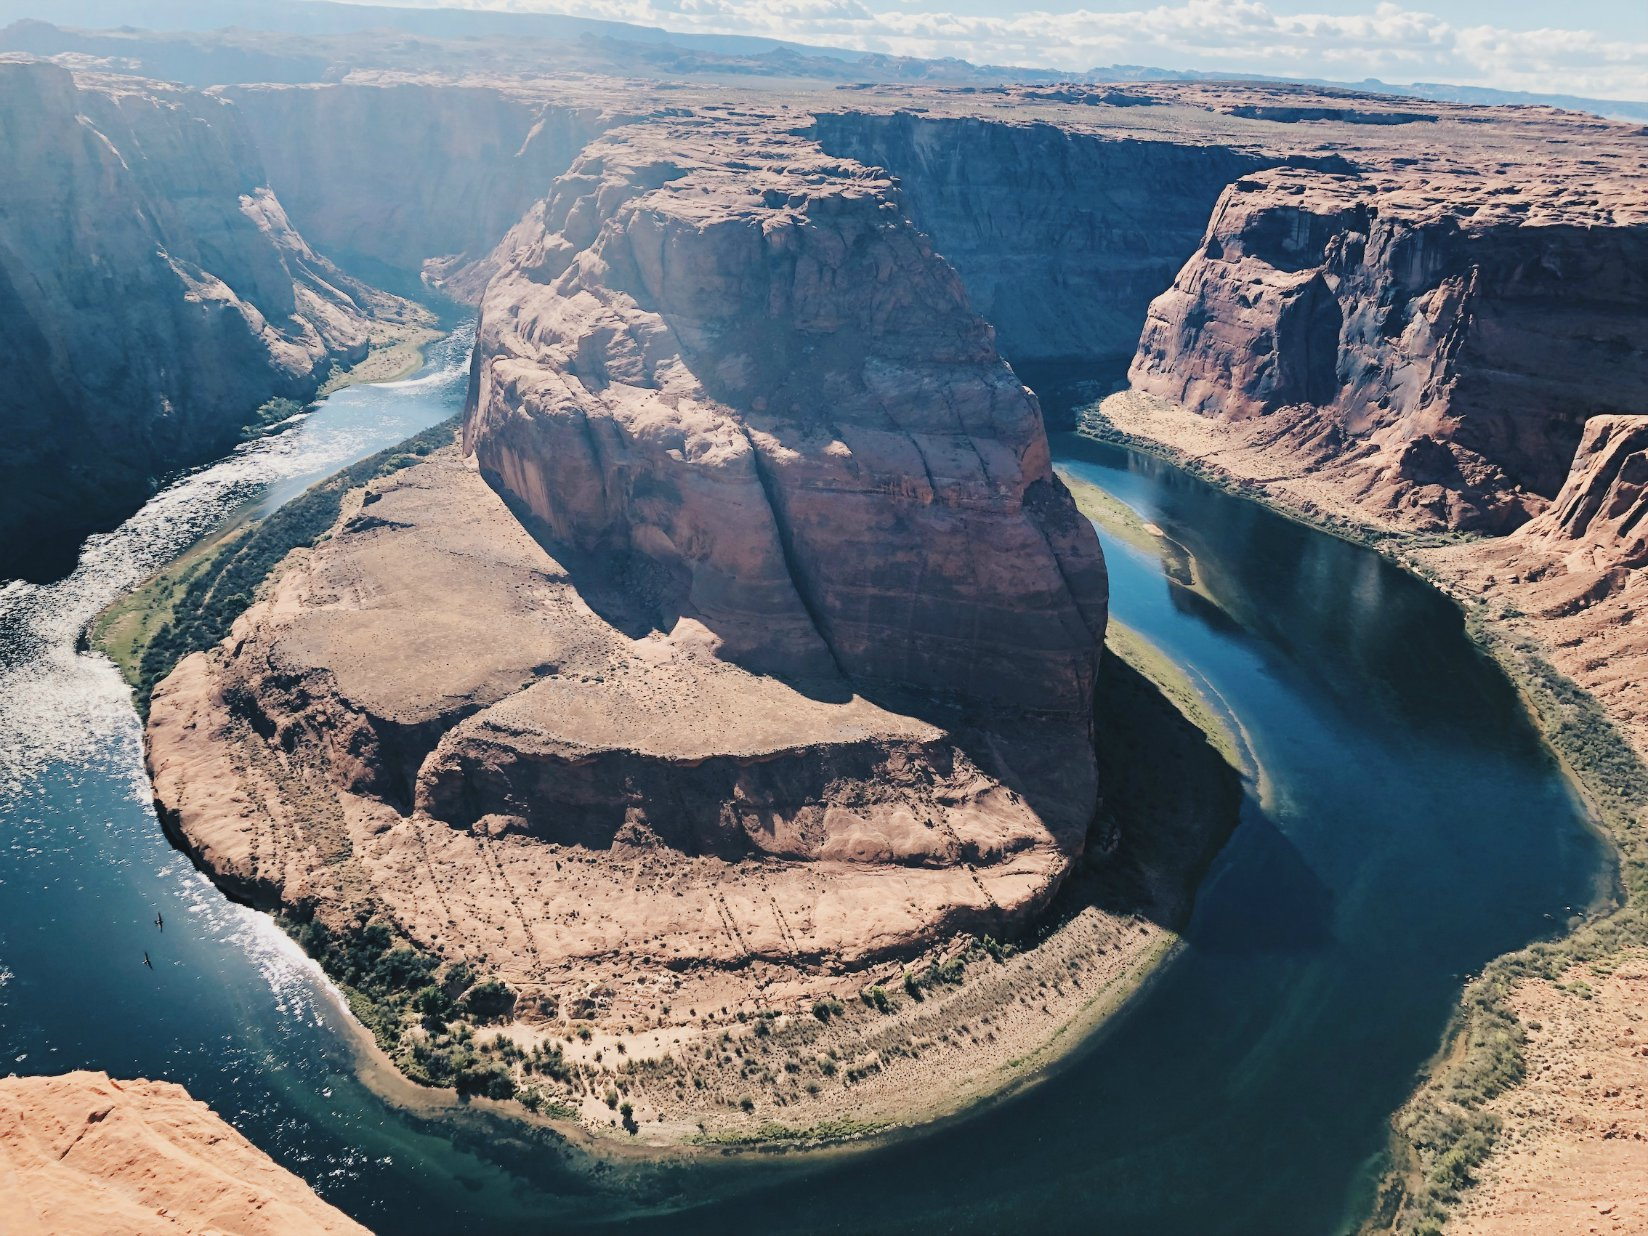 Horseshoe Bend at Glen Canyon Recreational Area